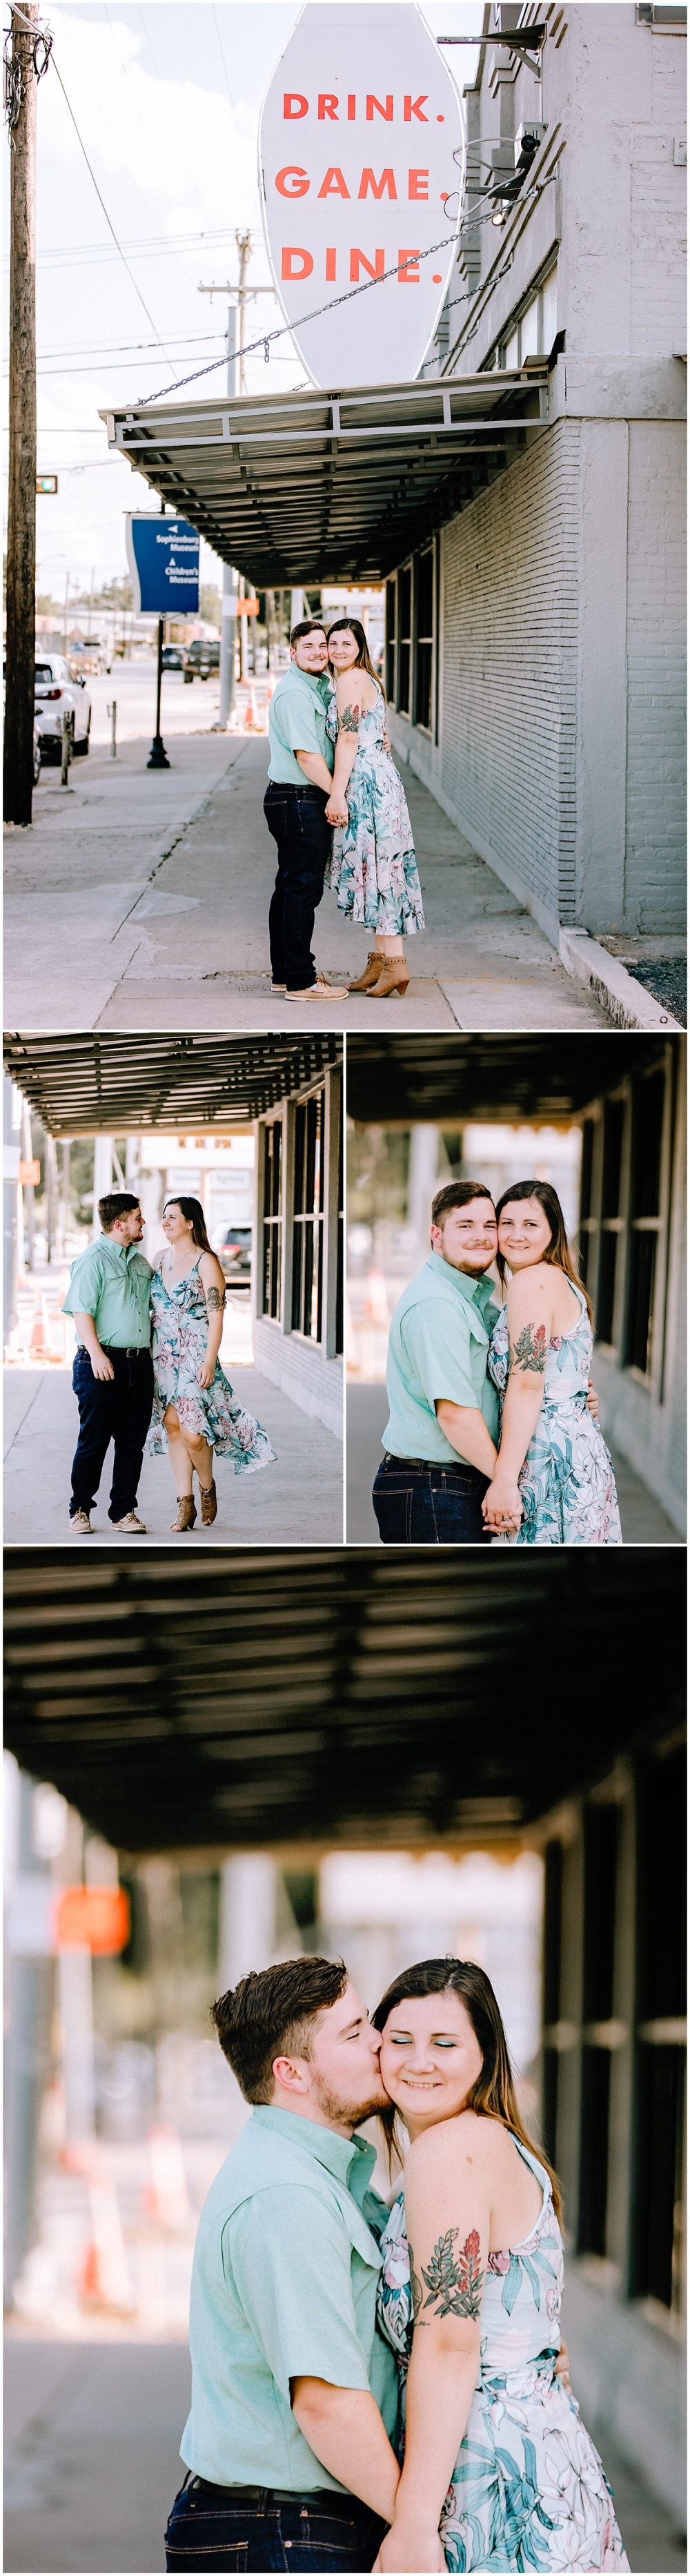 Engagement-Portraits-Couples-New-Braunels-Downtown-Carly-Barton-Photography-Wedding-Photographer-Gruene-Texas_0001.jpg